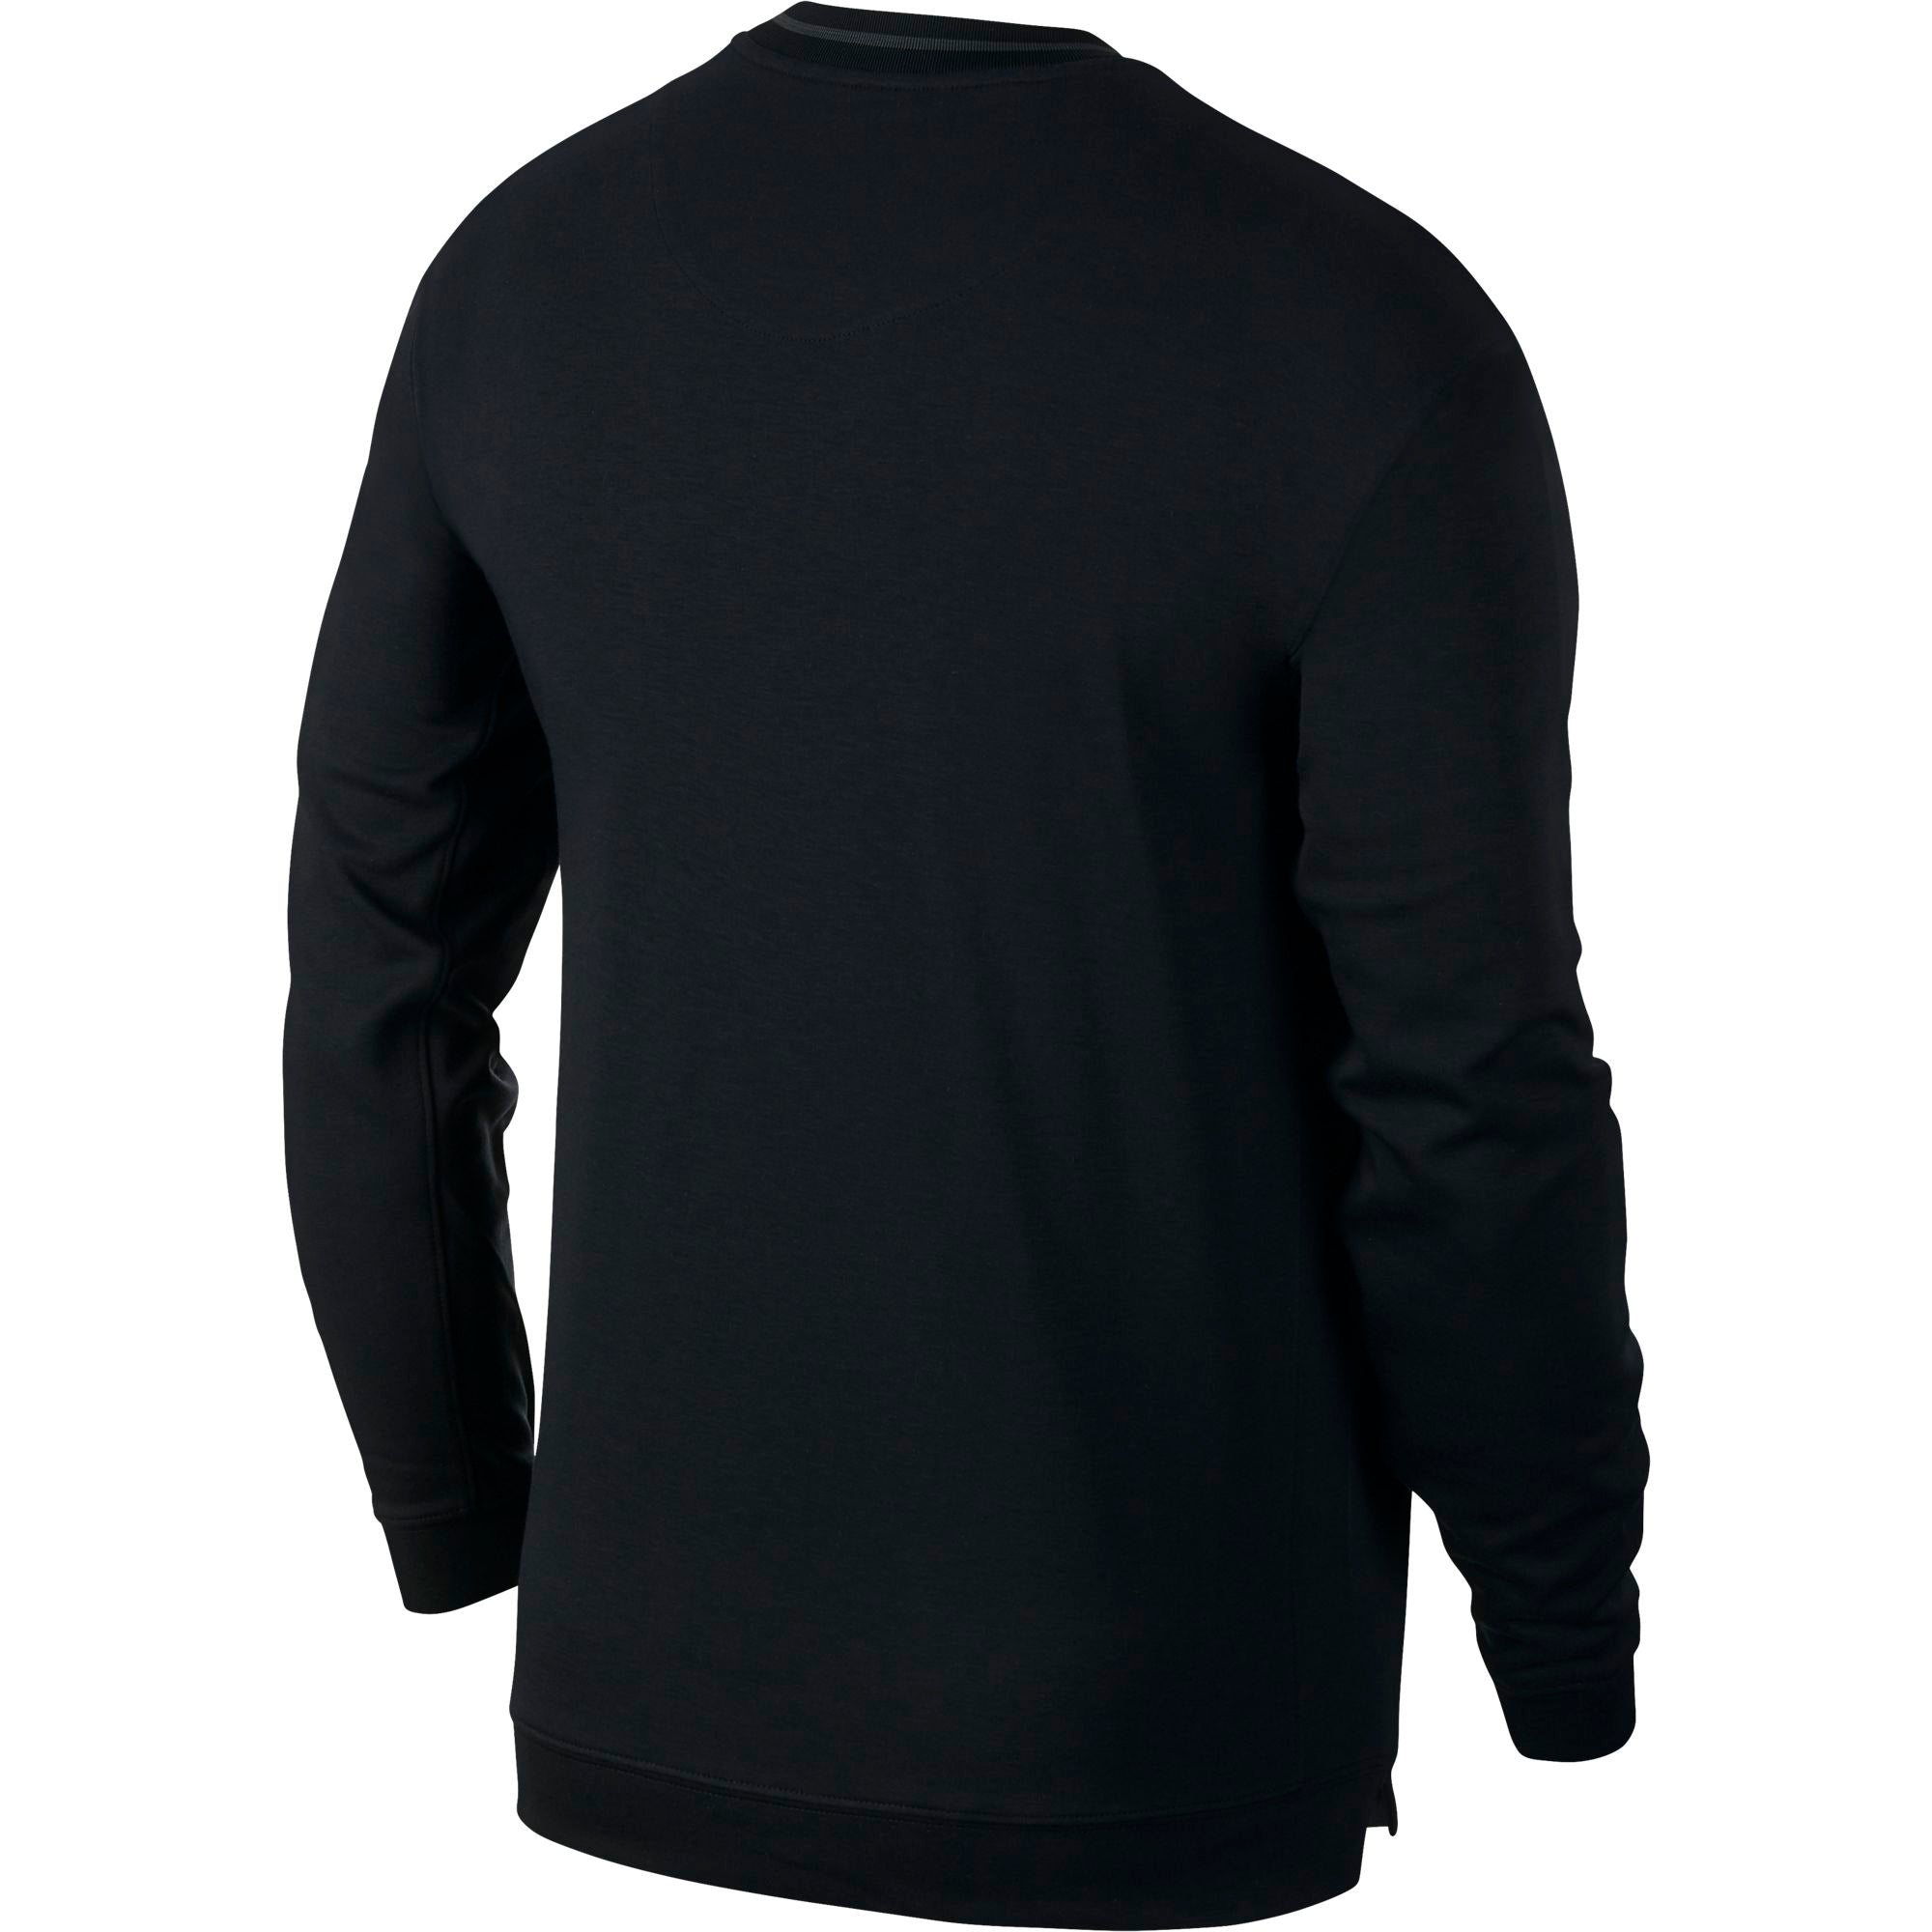 Nike Basketball Dry Fit Long Sleeved Top - Black/Anthracite